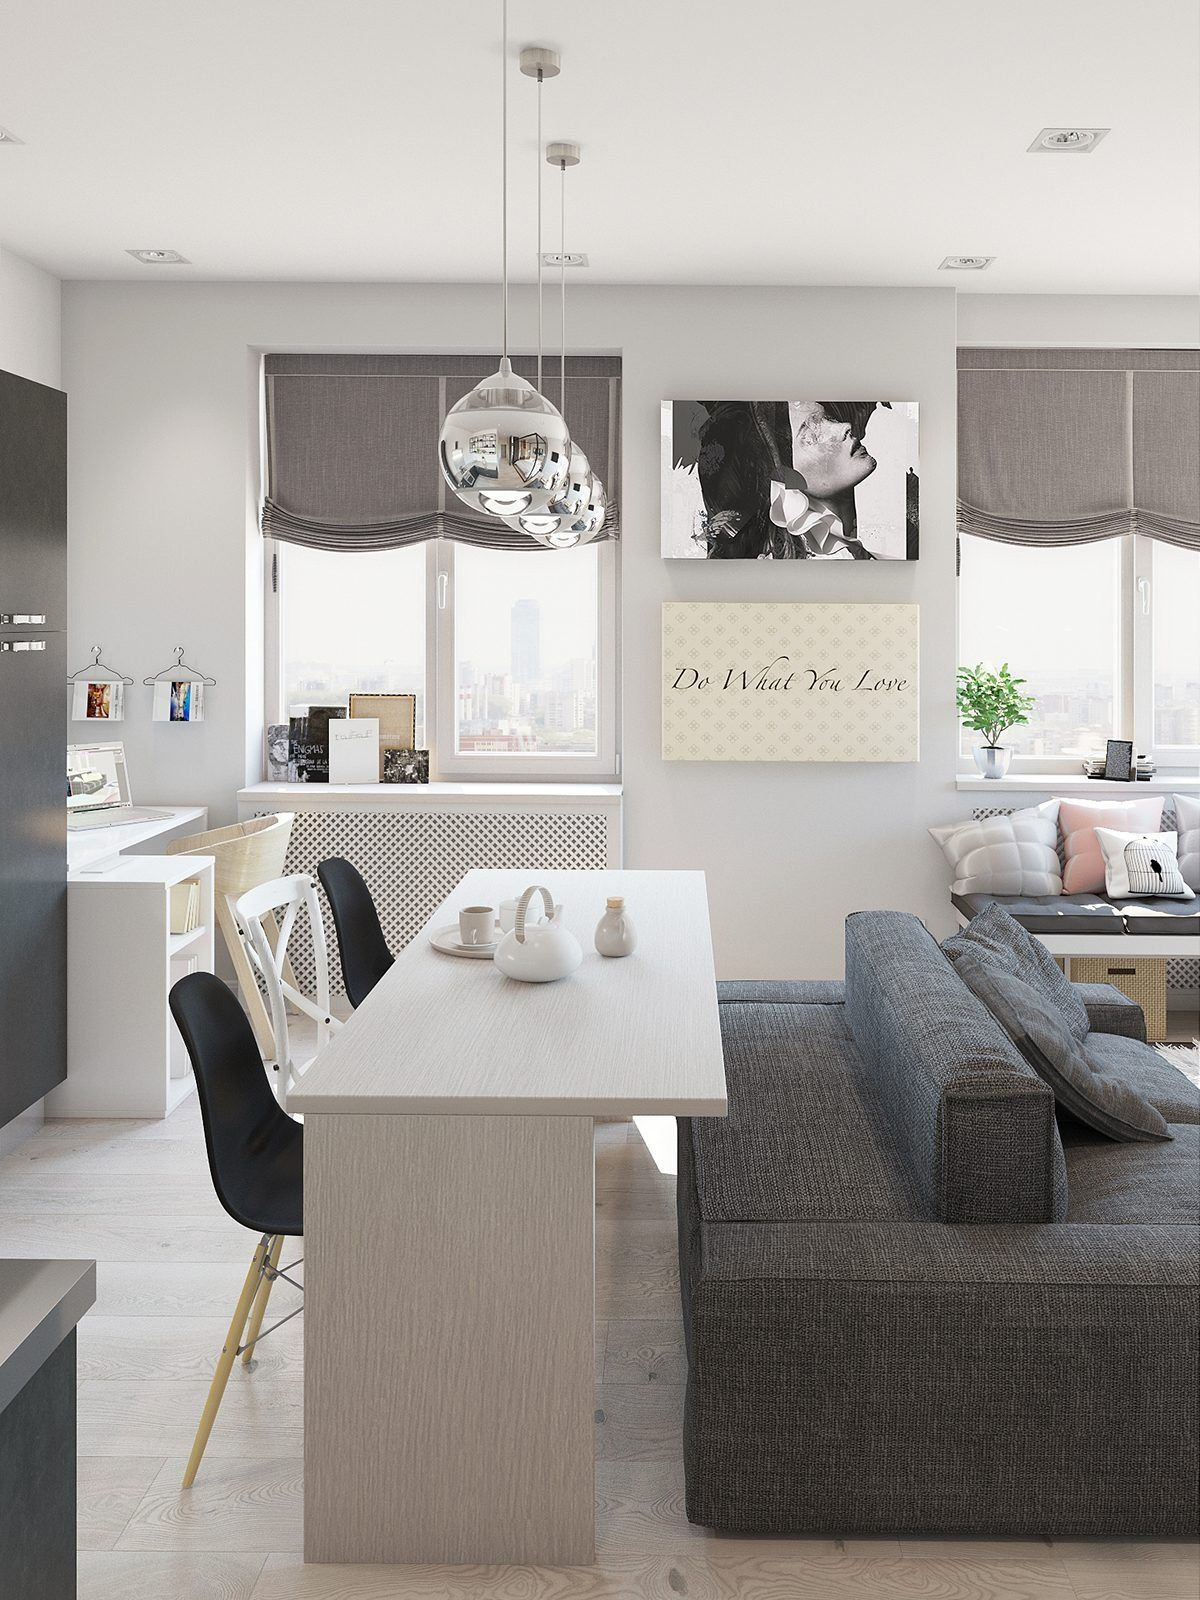 four small studios that explore fun and whimsical styles kitchen although minimalistic studio apartment styles might seem easier to coordinate, there\u0027s limit to the creativity that a constricted space can inspire